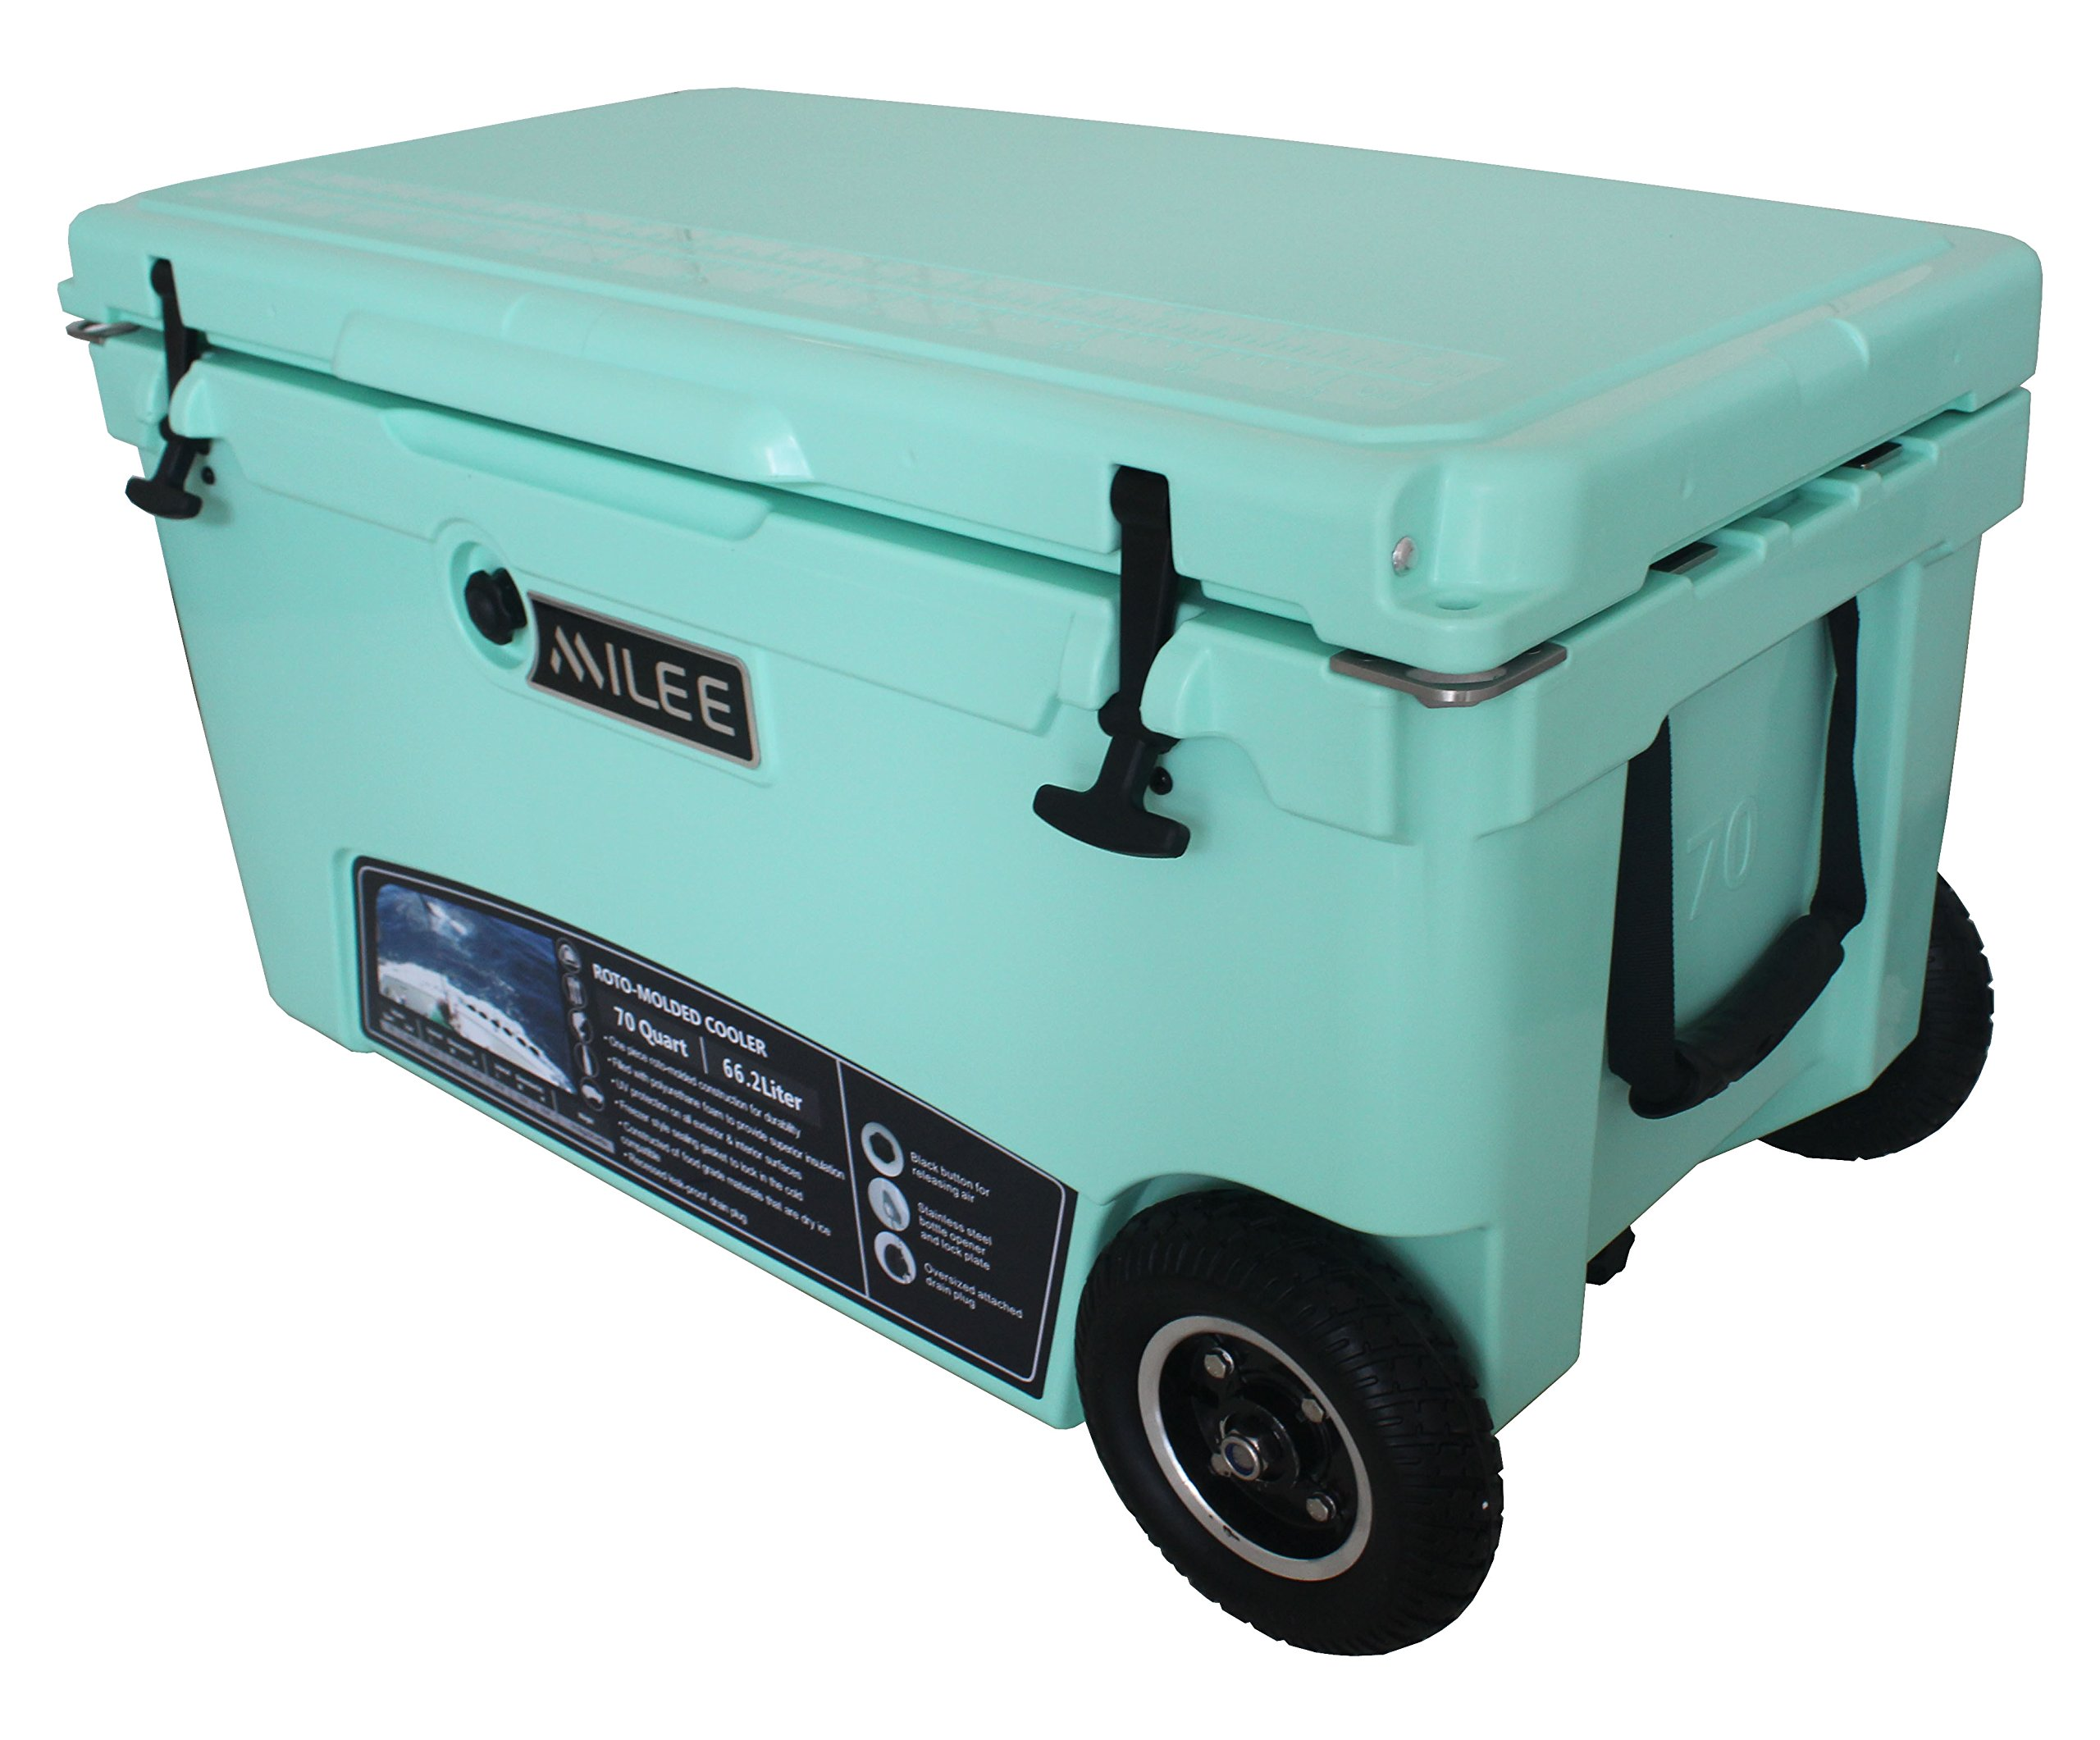 MILEE--Heavy duty Wheeled Cooler 70QT (Sea Foam Green) by MILEE